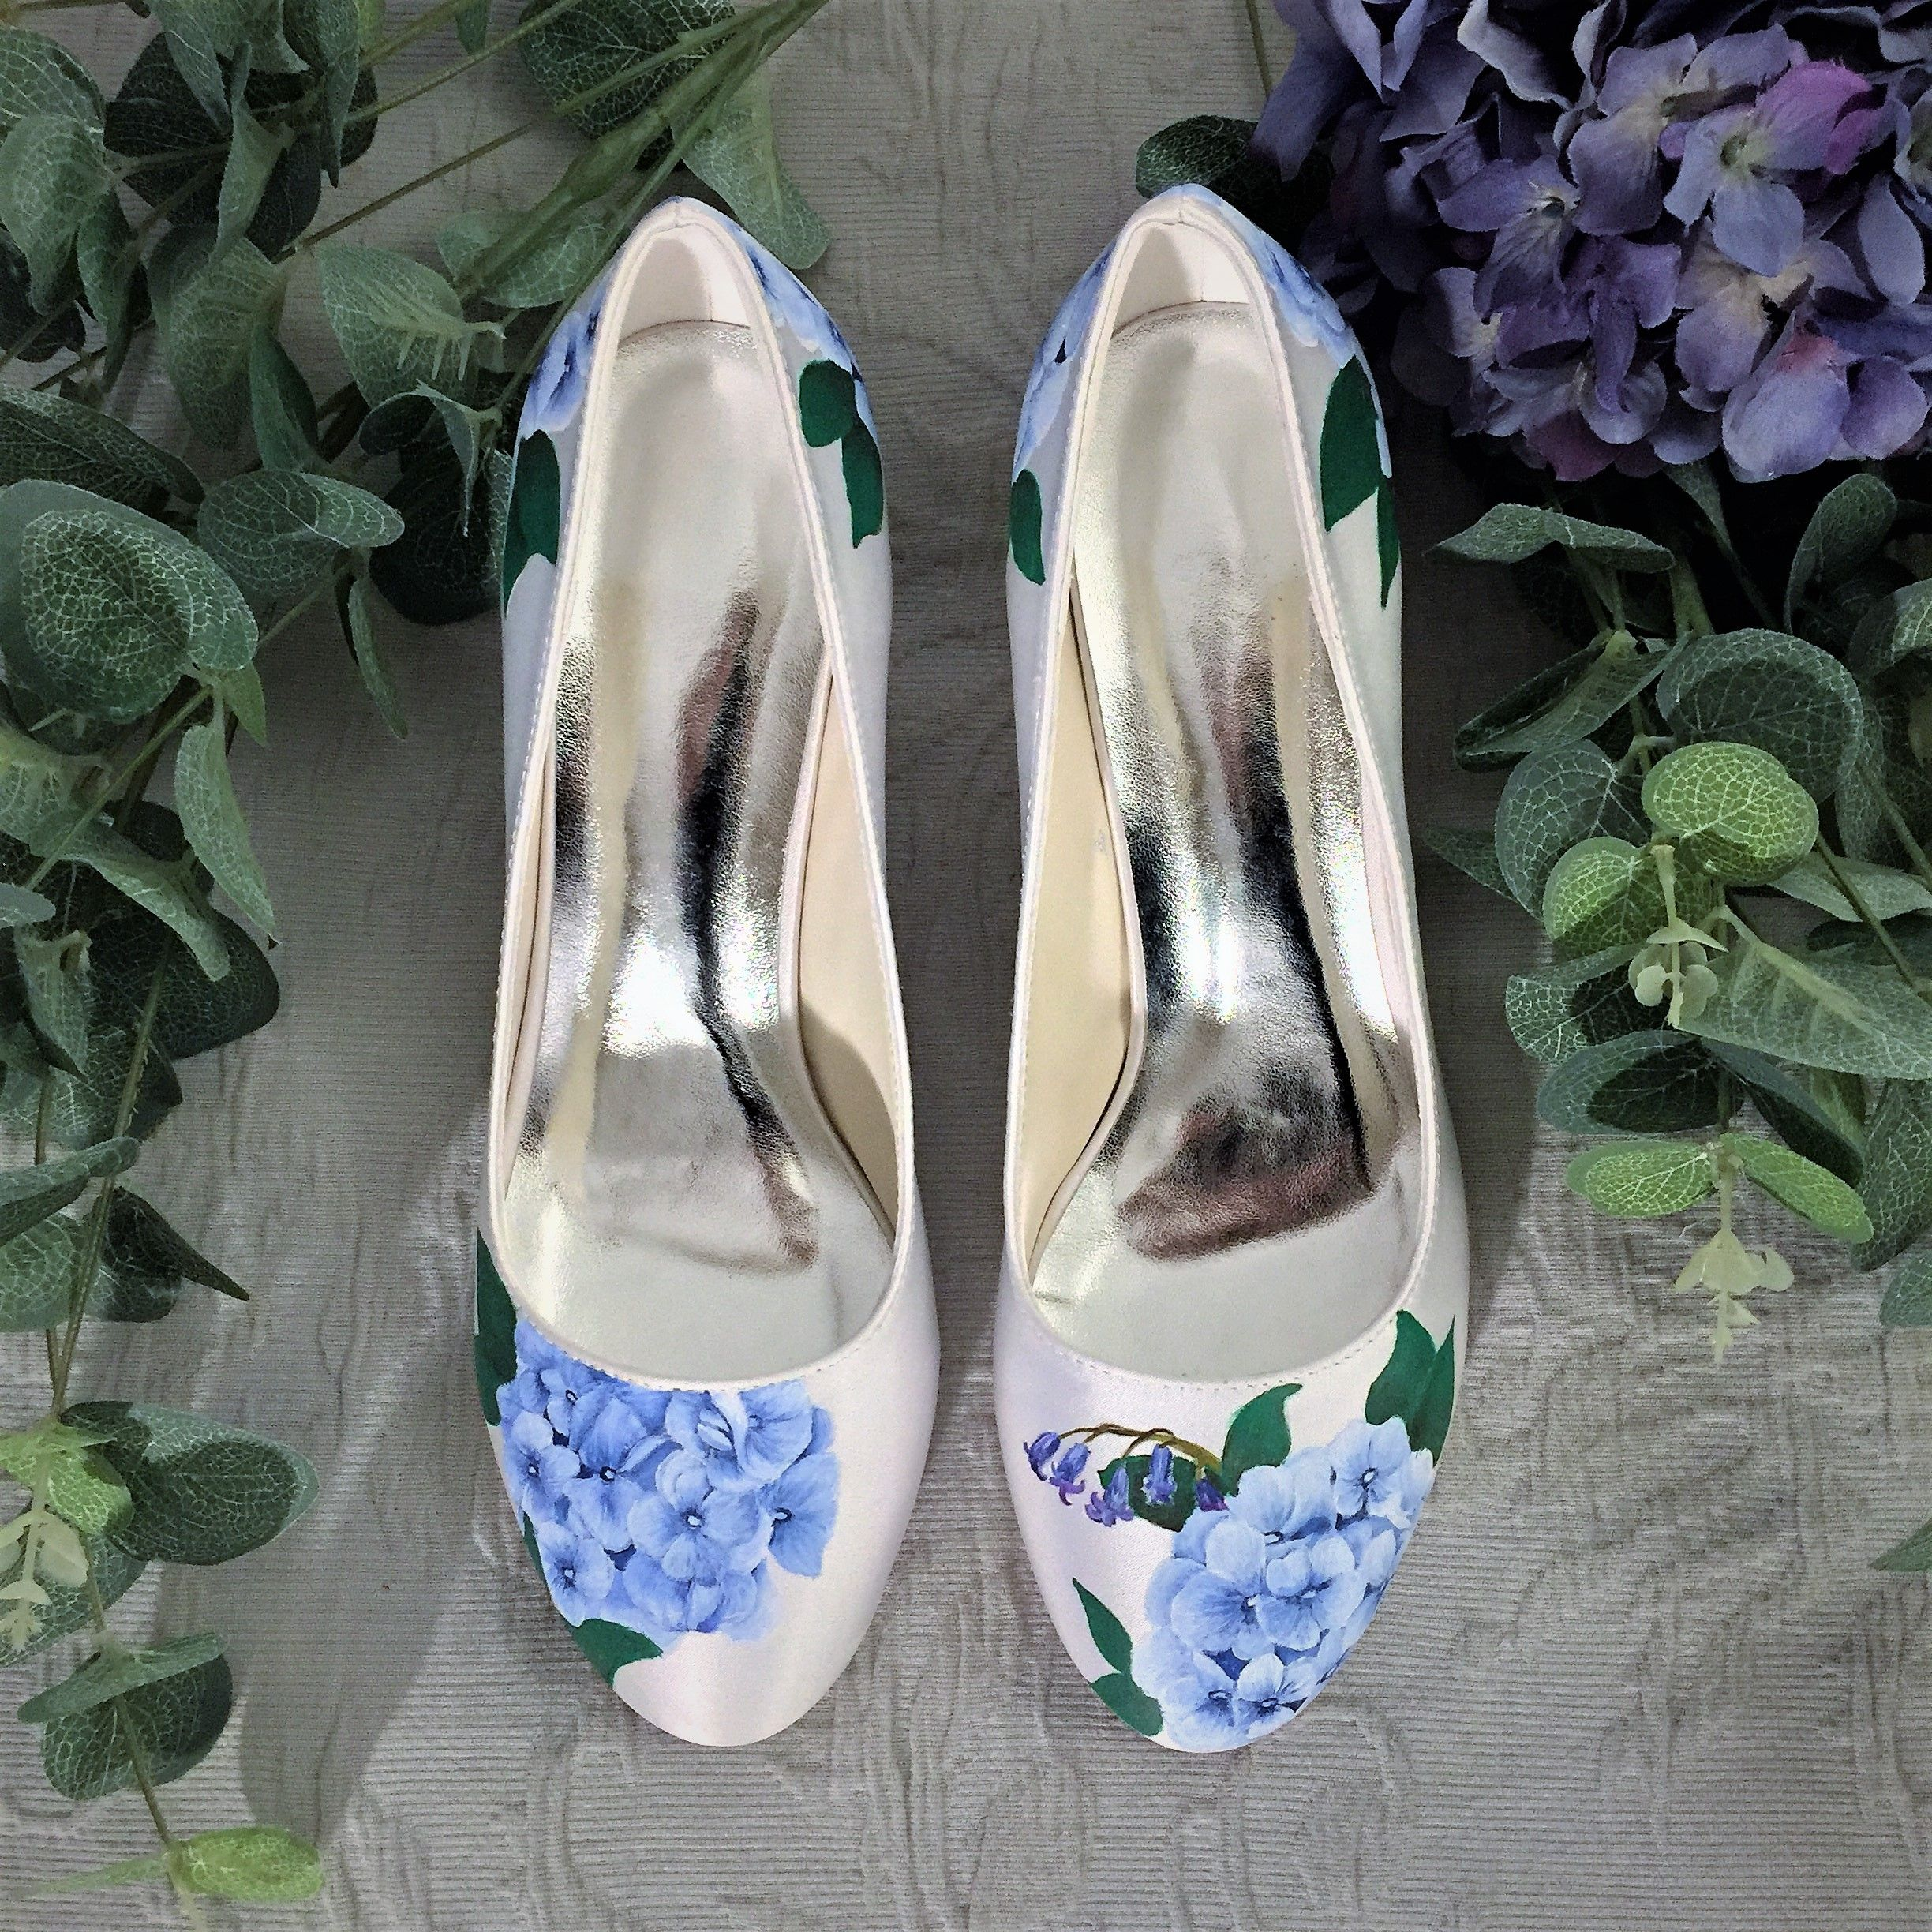 b93b44771aa330 Blue Hydrangea   bluebell hand-painted floral wedding shoes ...